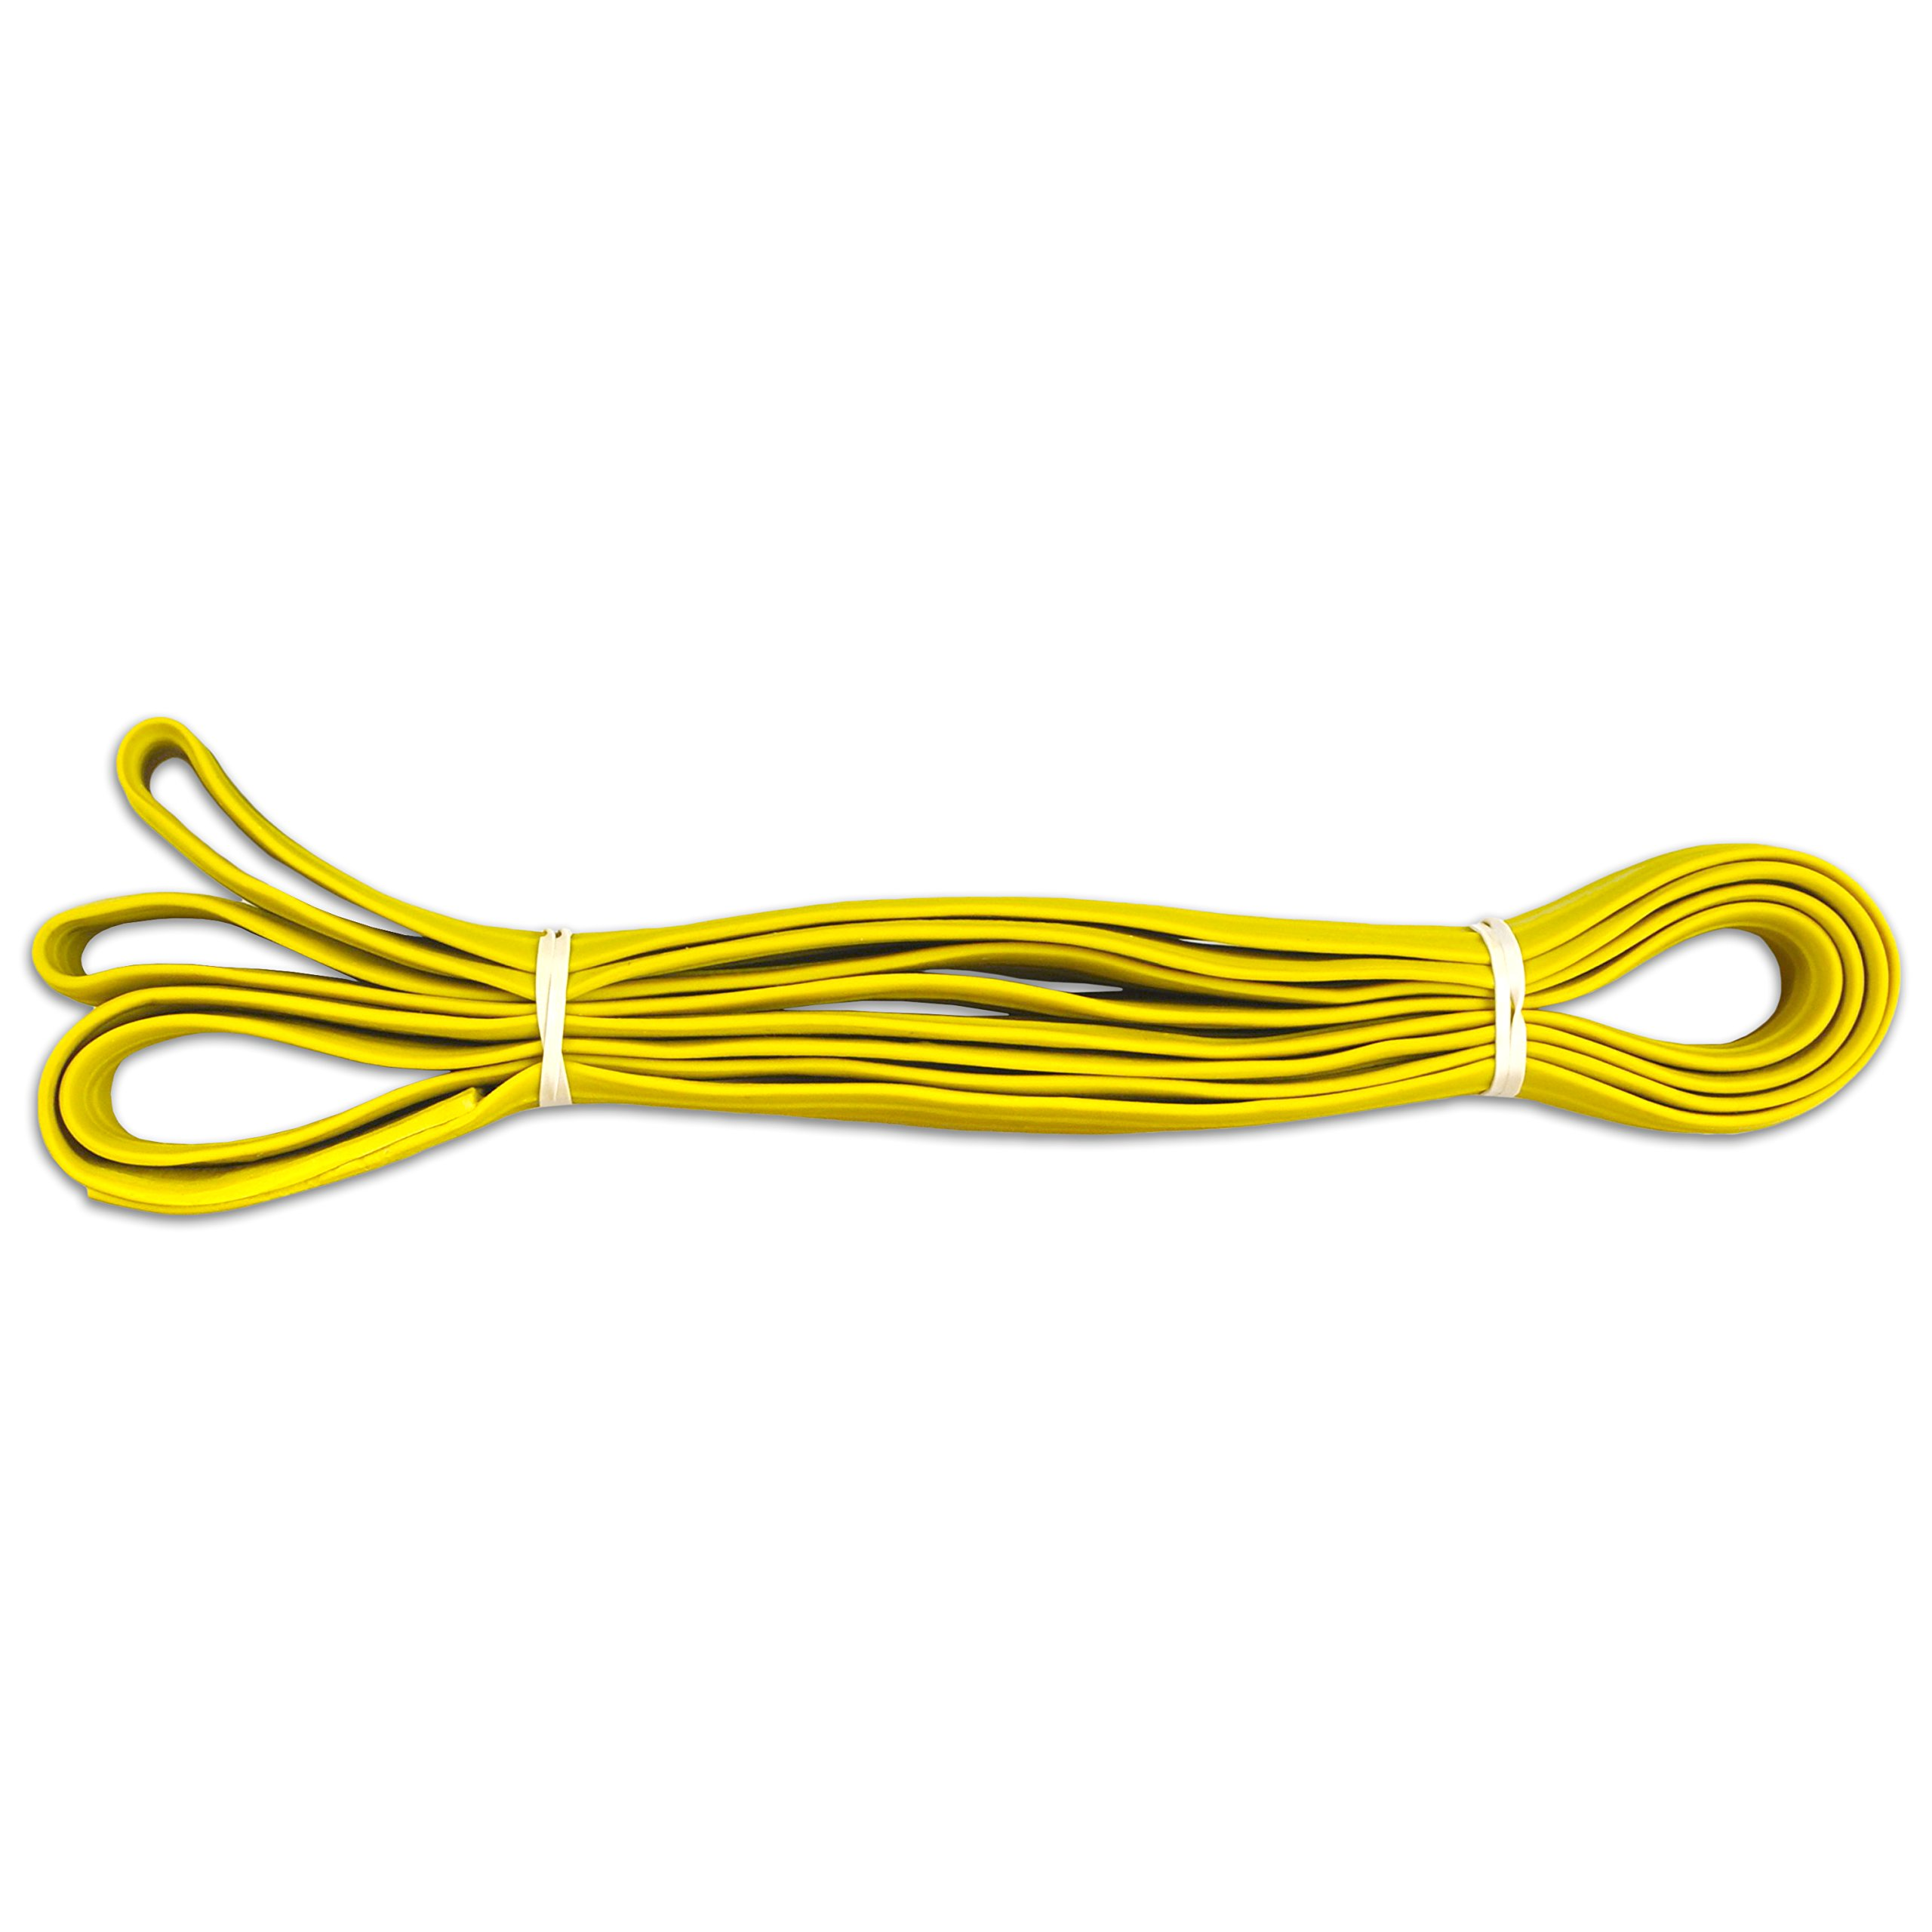 Alliance Rubber 2403203 Pallet Bands, 12 Extra Large 84'' Industrial Strength Heavy Duty Rubber Bands (84'' x 1'' x 1/16'', Yellow)